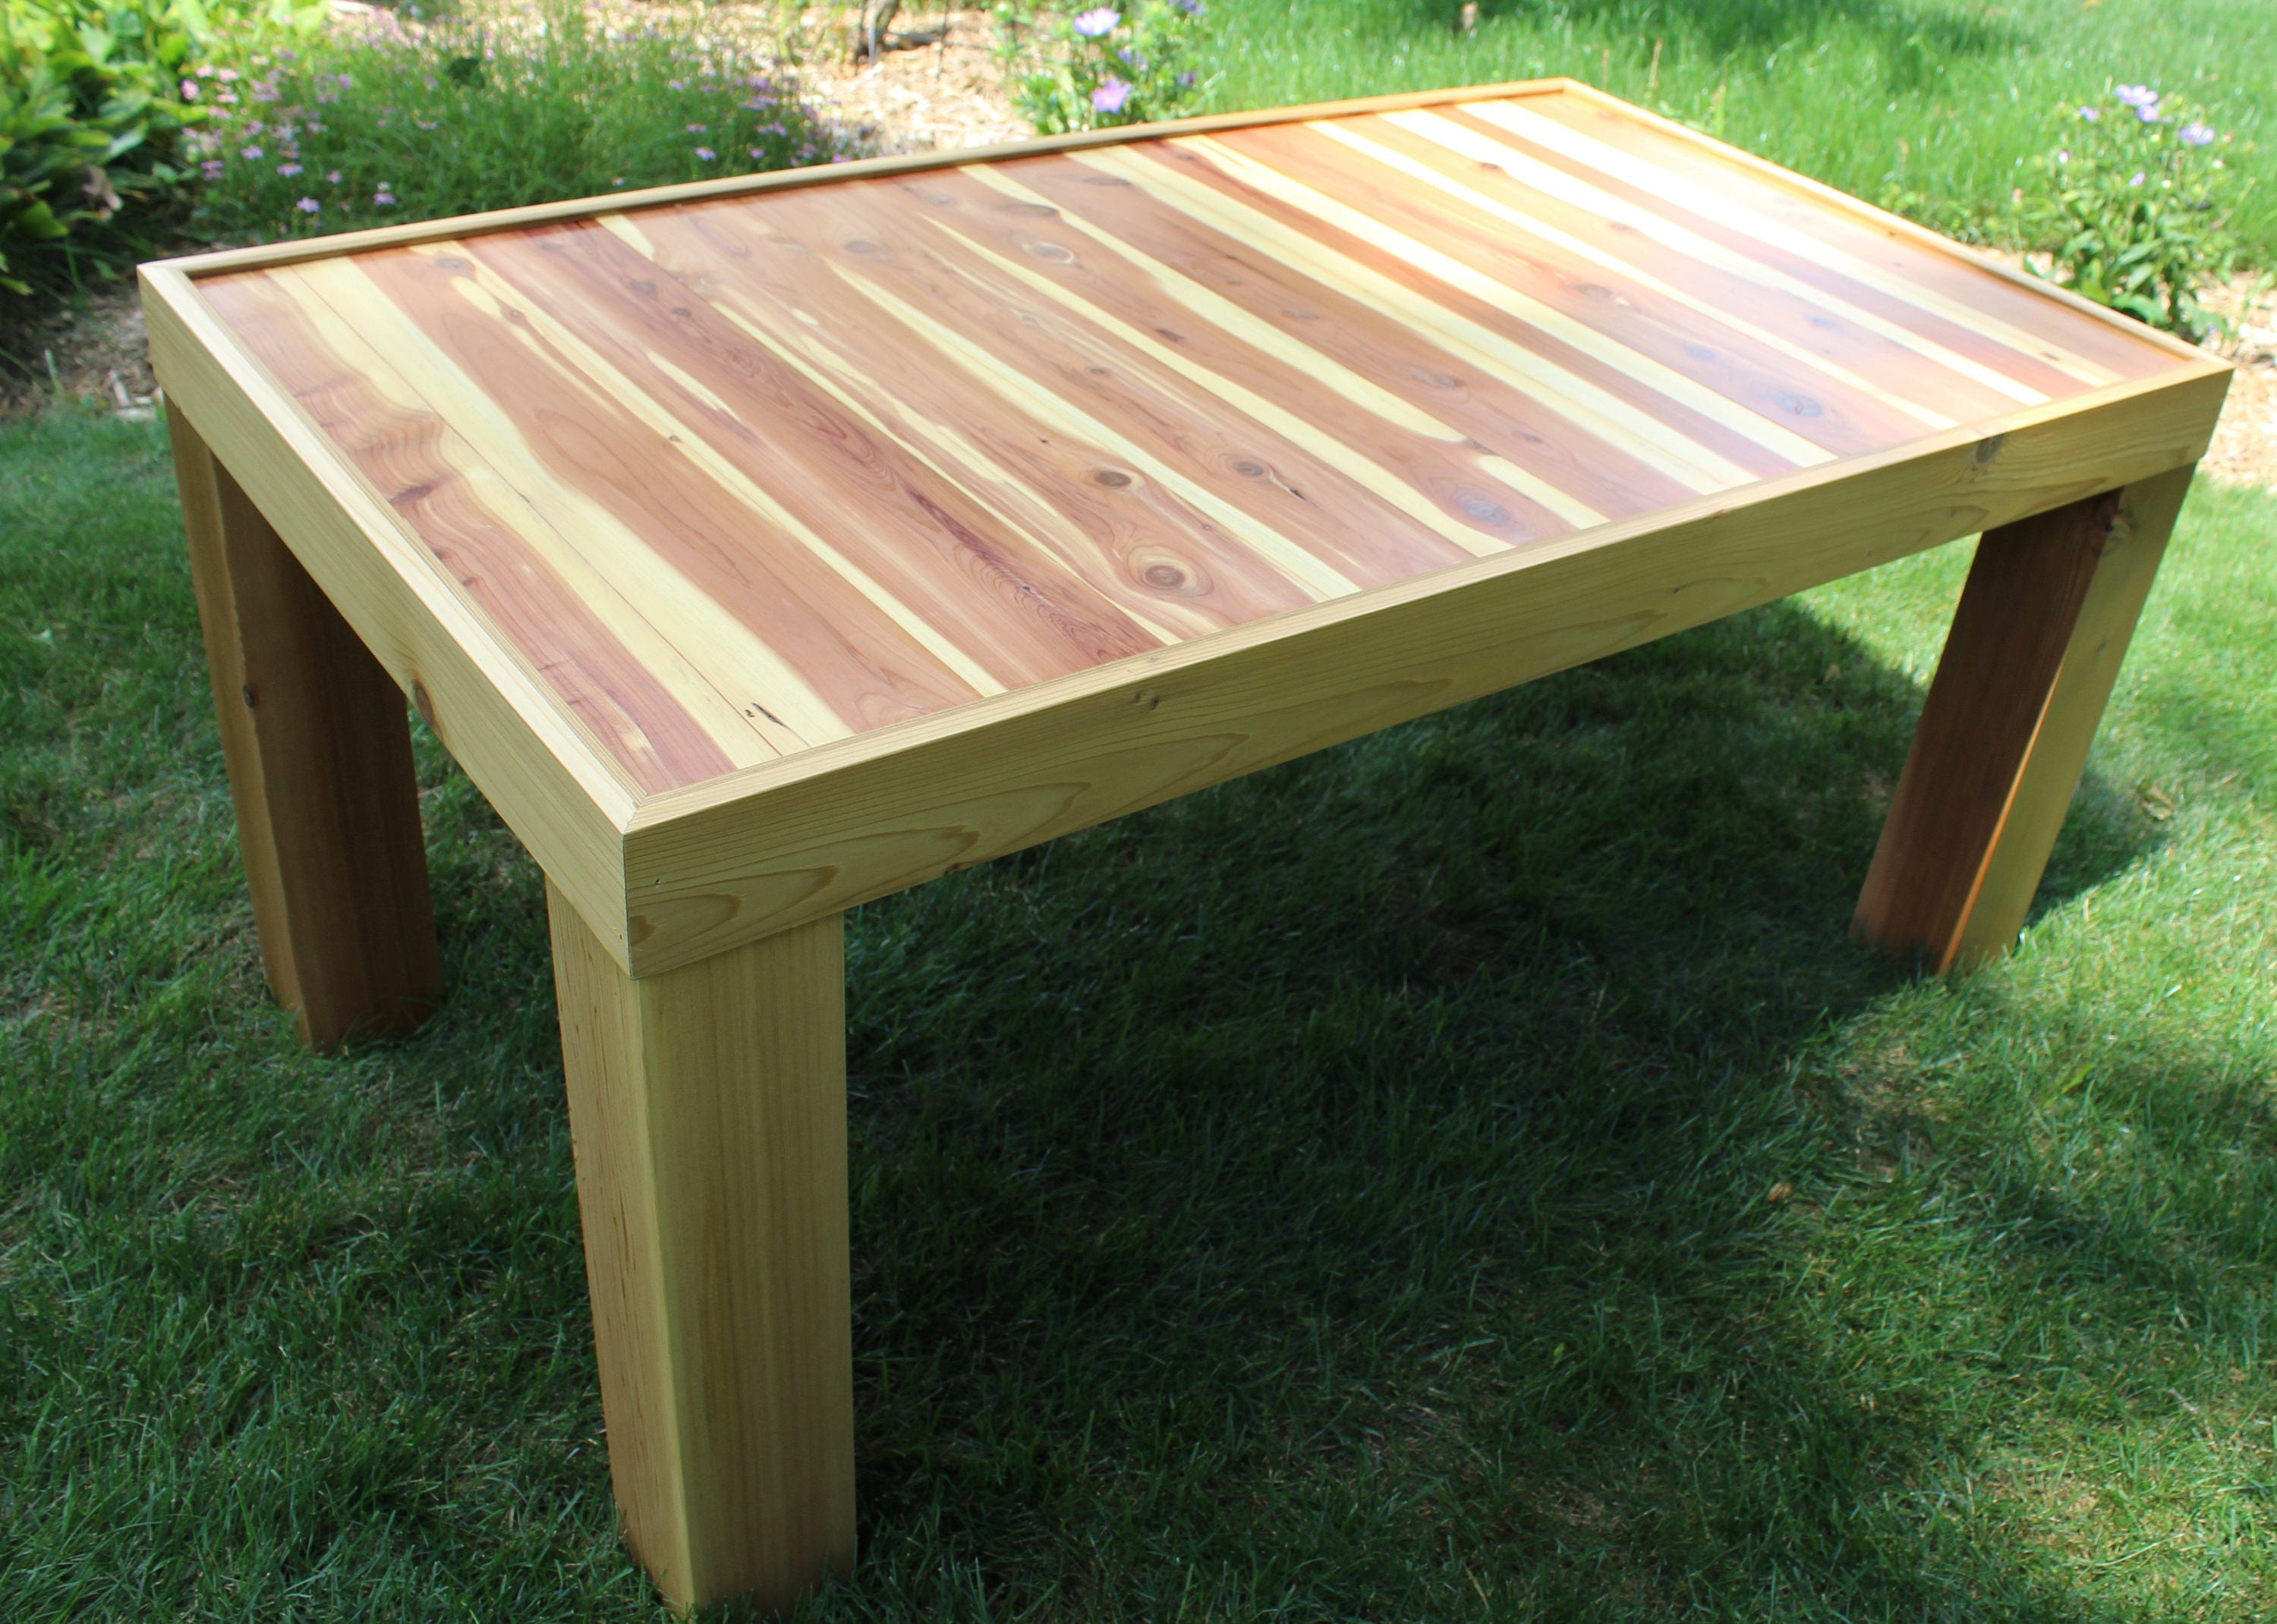 Outdoor Cedar Coffee Table Outdoor Patio Table Sundeck Deck